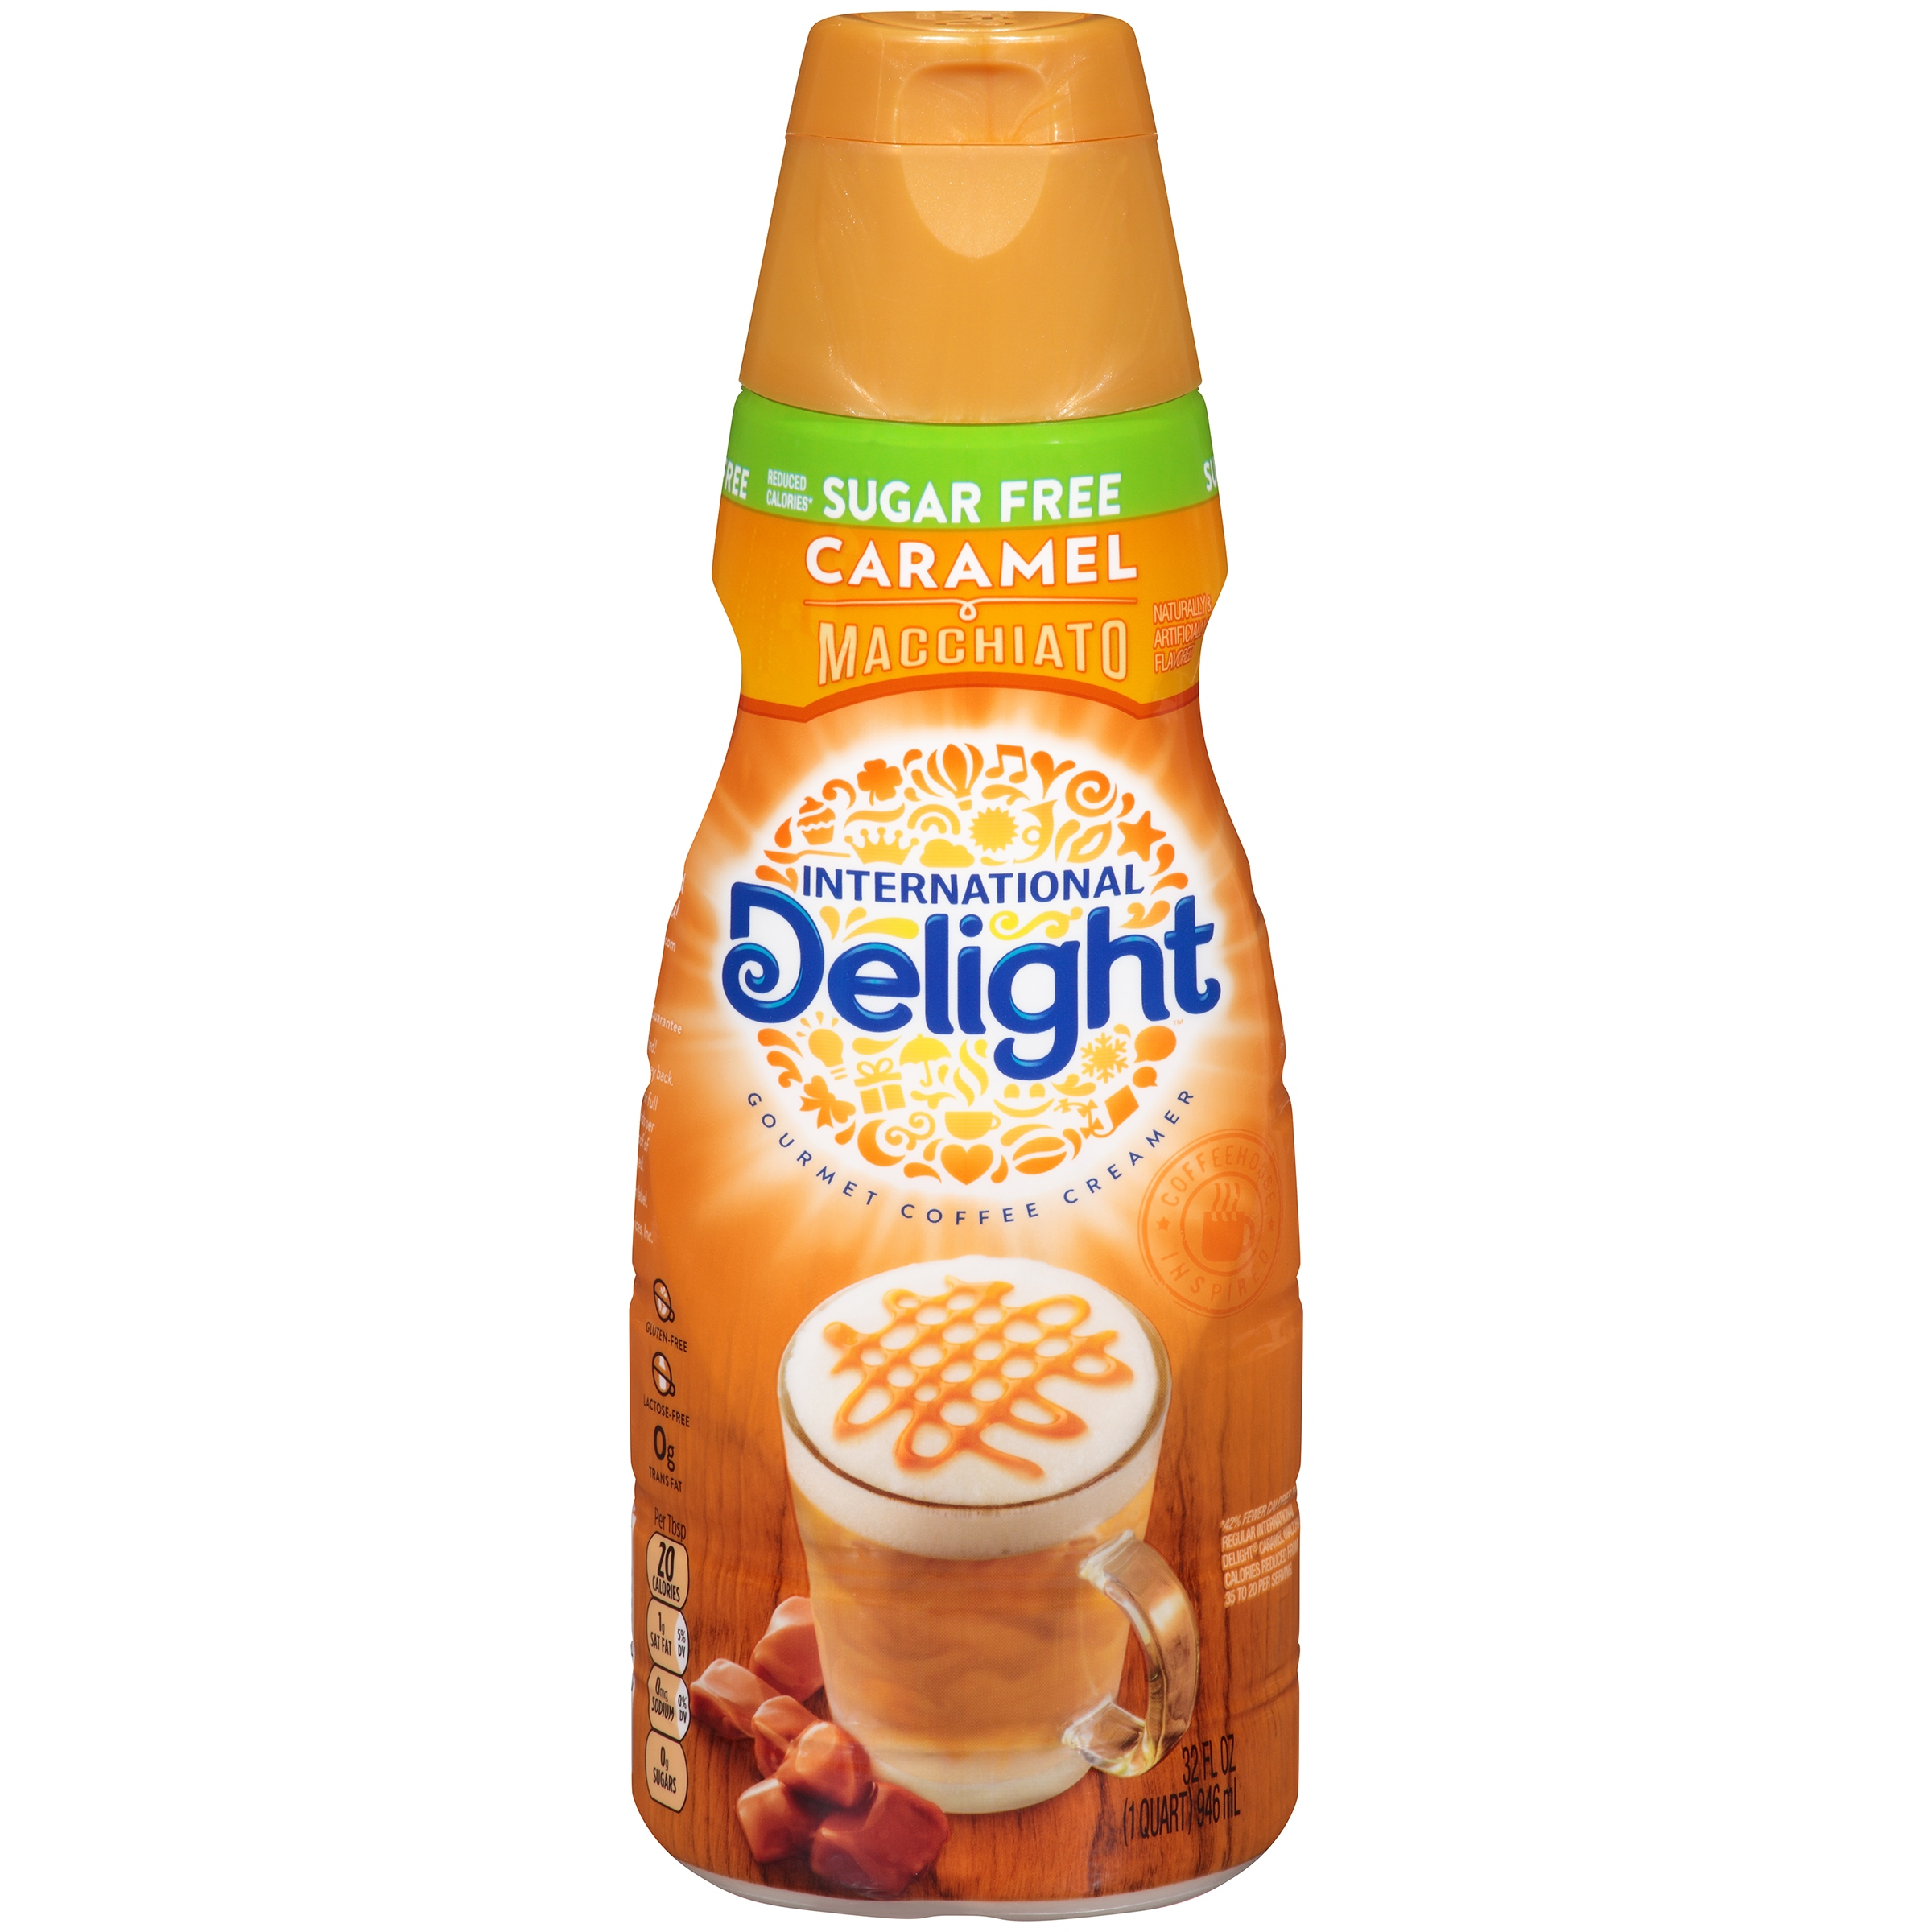 Macchiato Caramel International Delight Sugar Free Caramel Macchiato Coffee Creamer 32 Oz